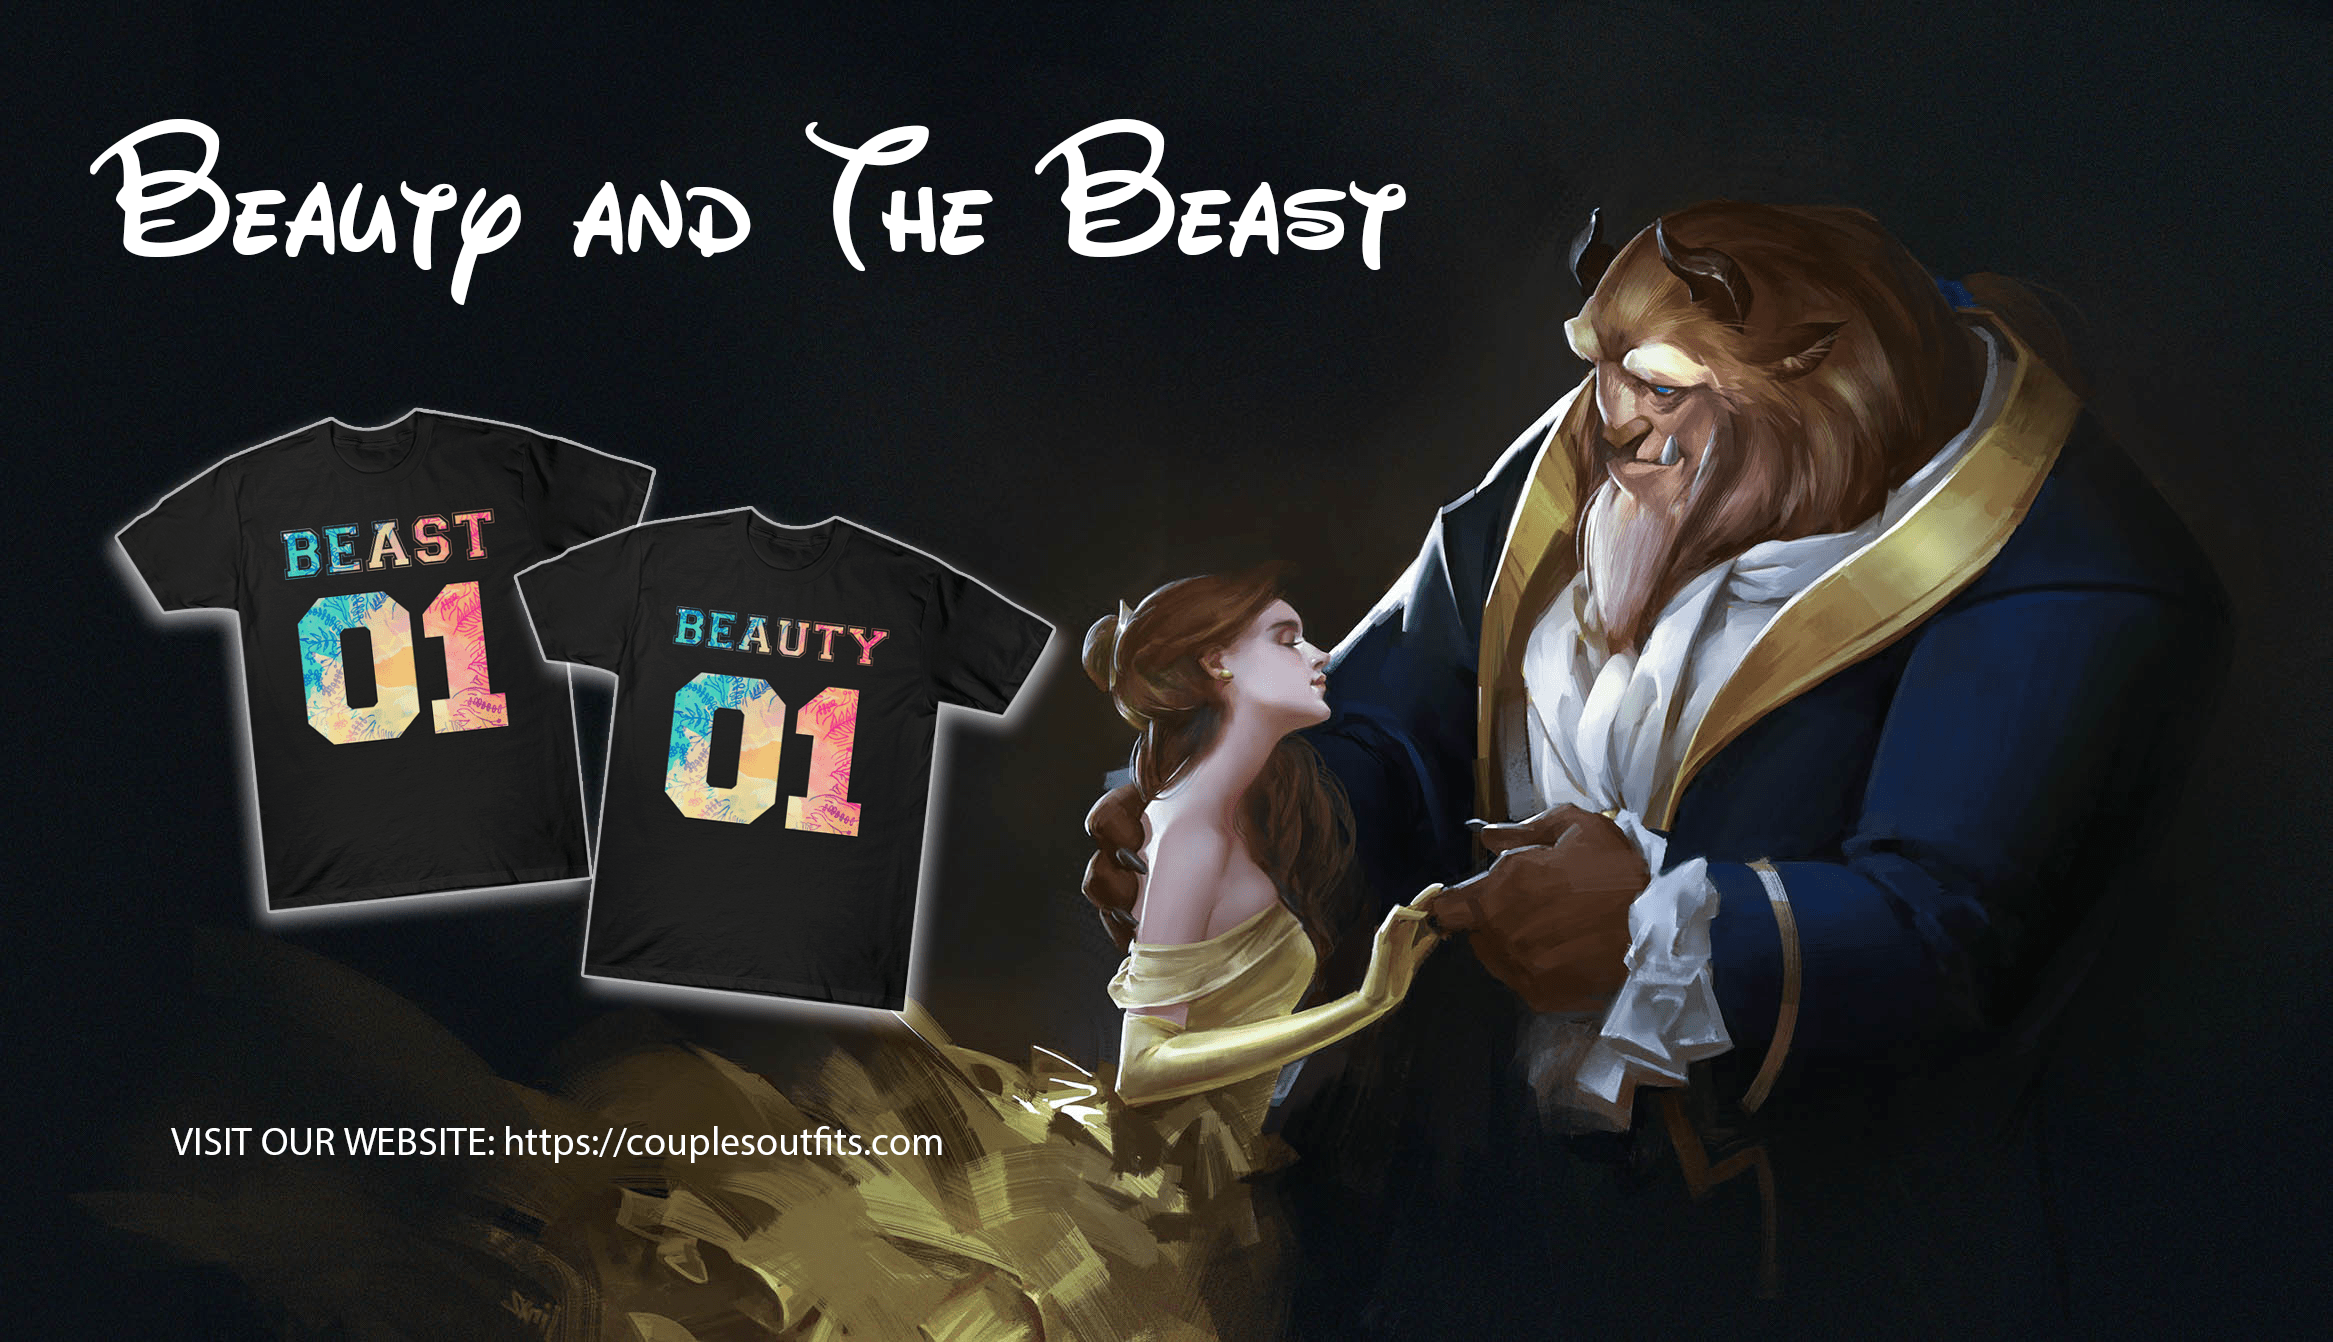 Beauty and The Beast Shirts Banner